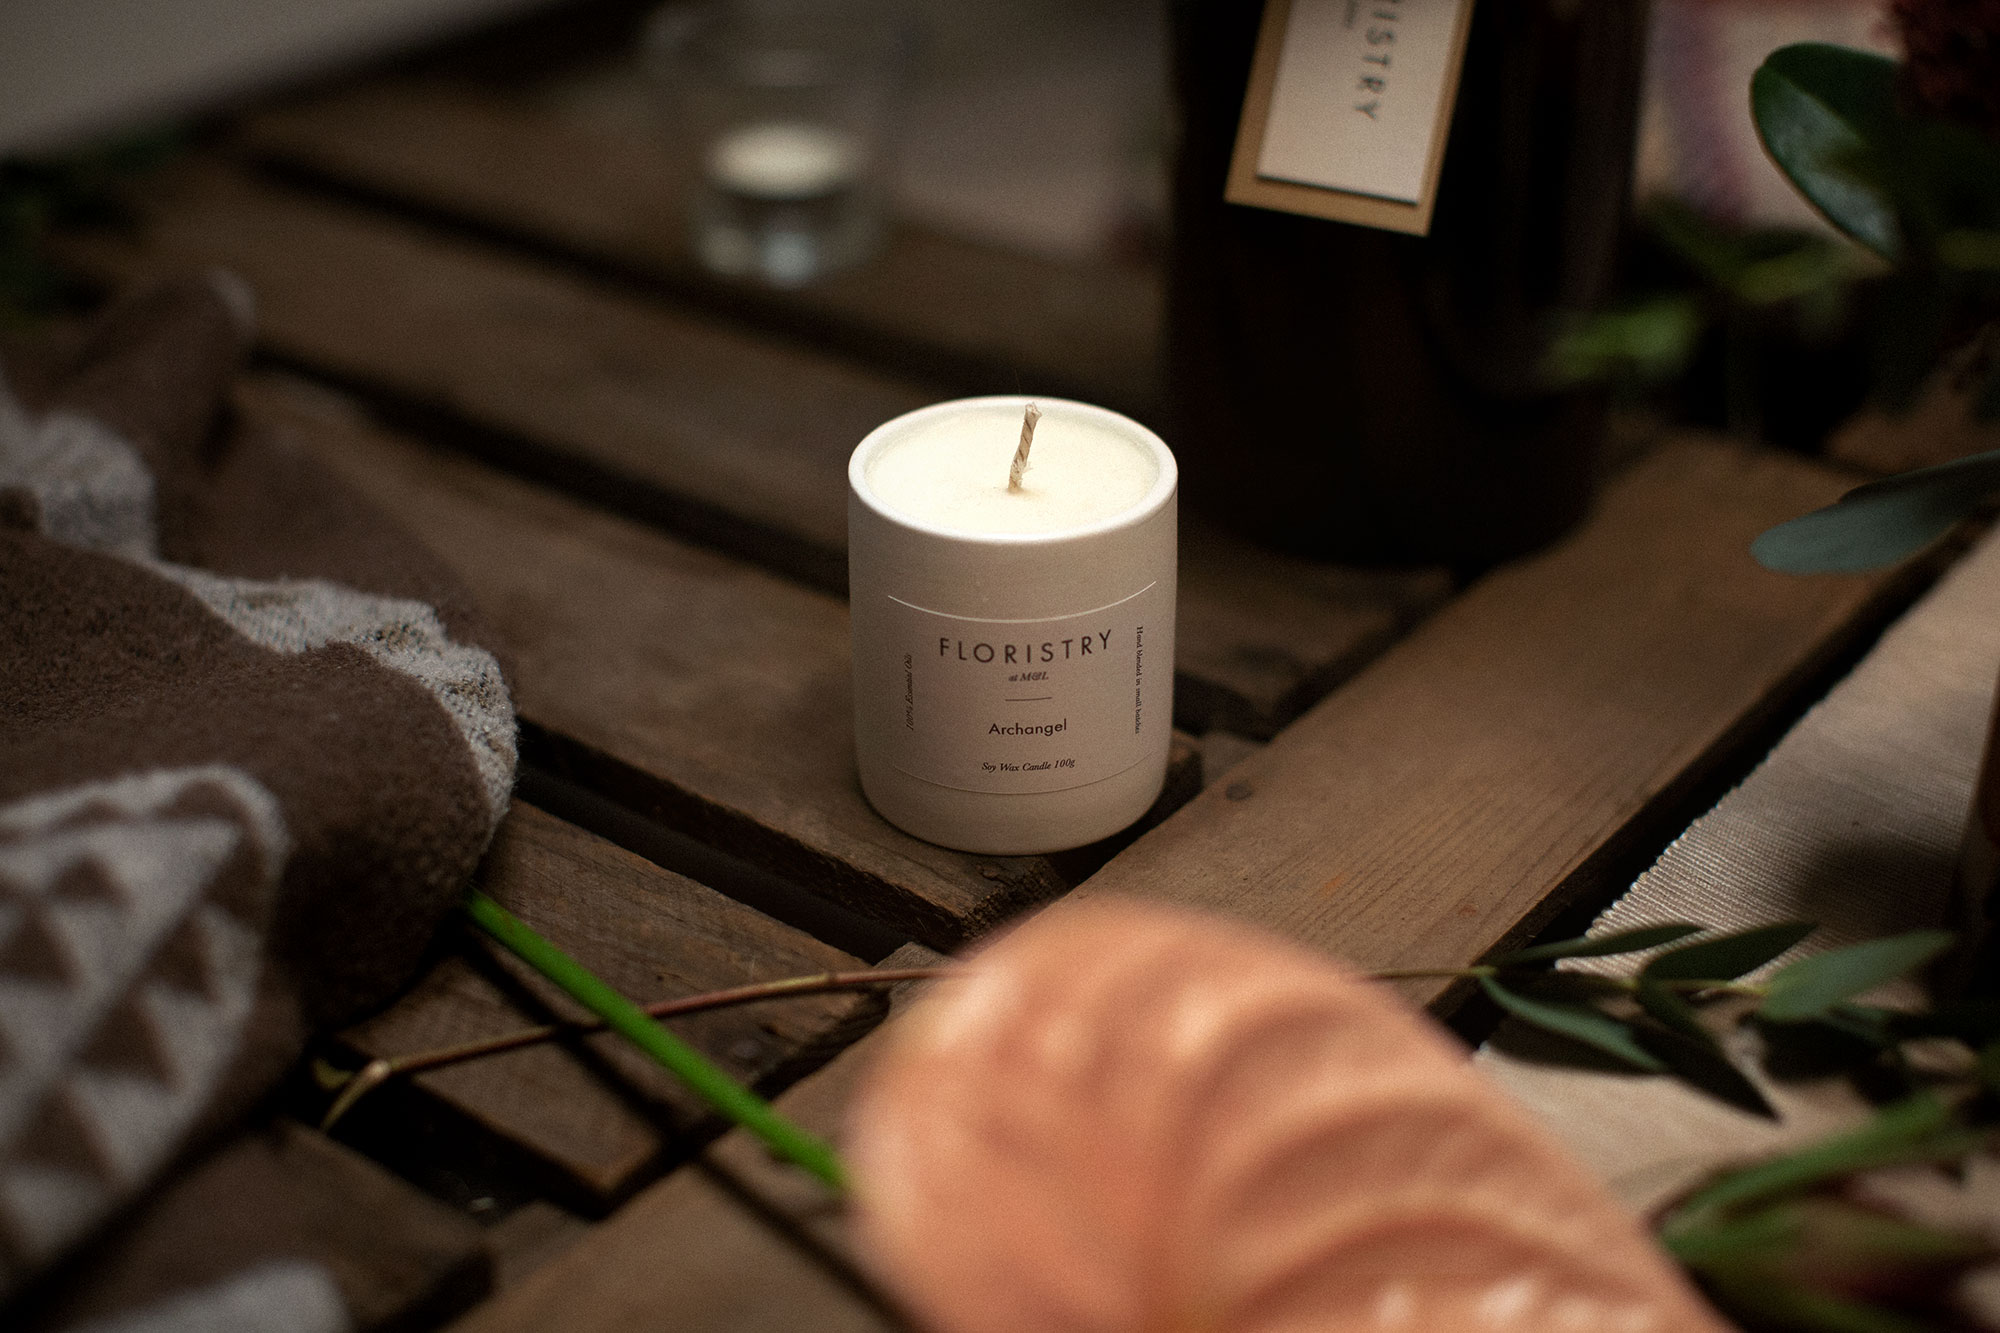 Floristry Soy Wax Candle